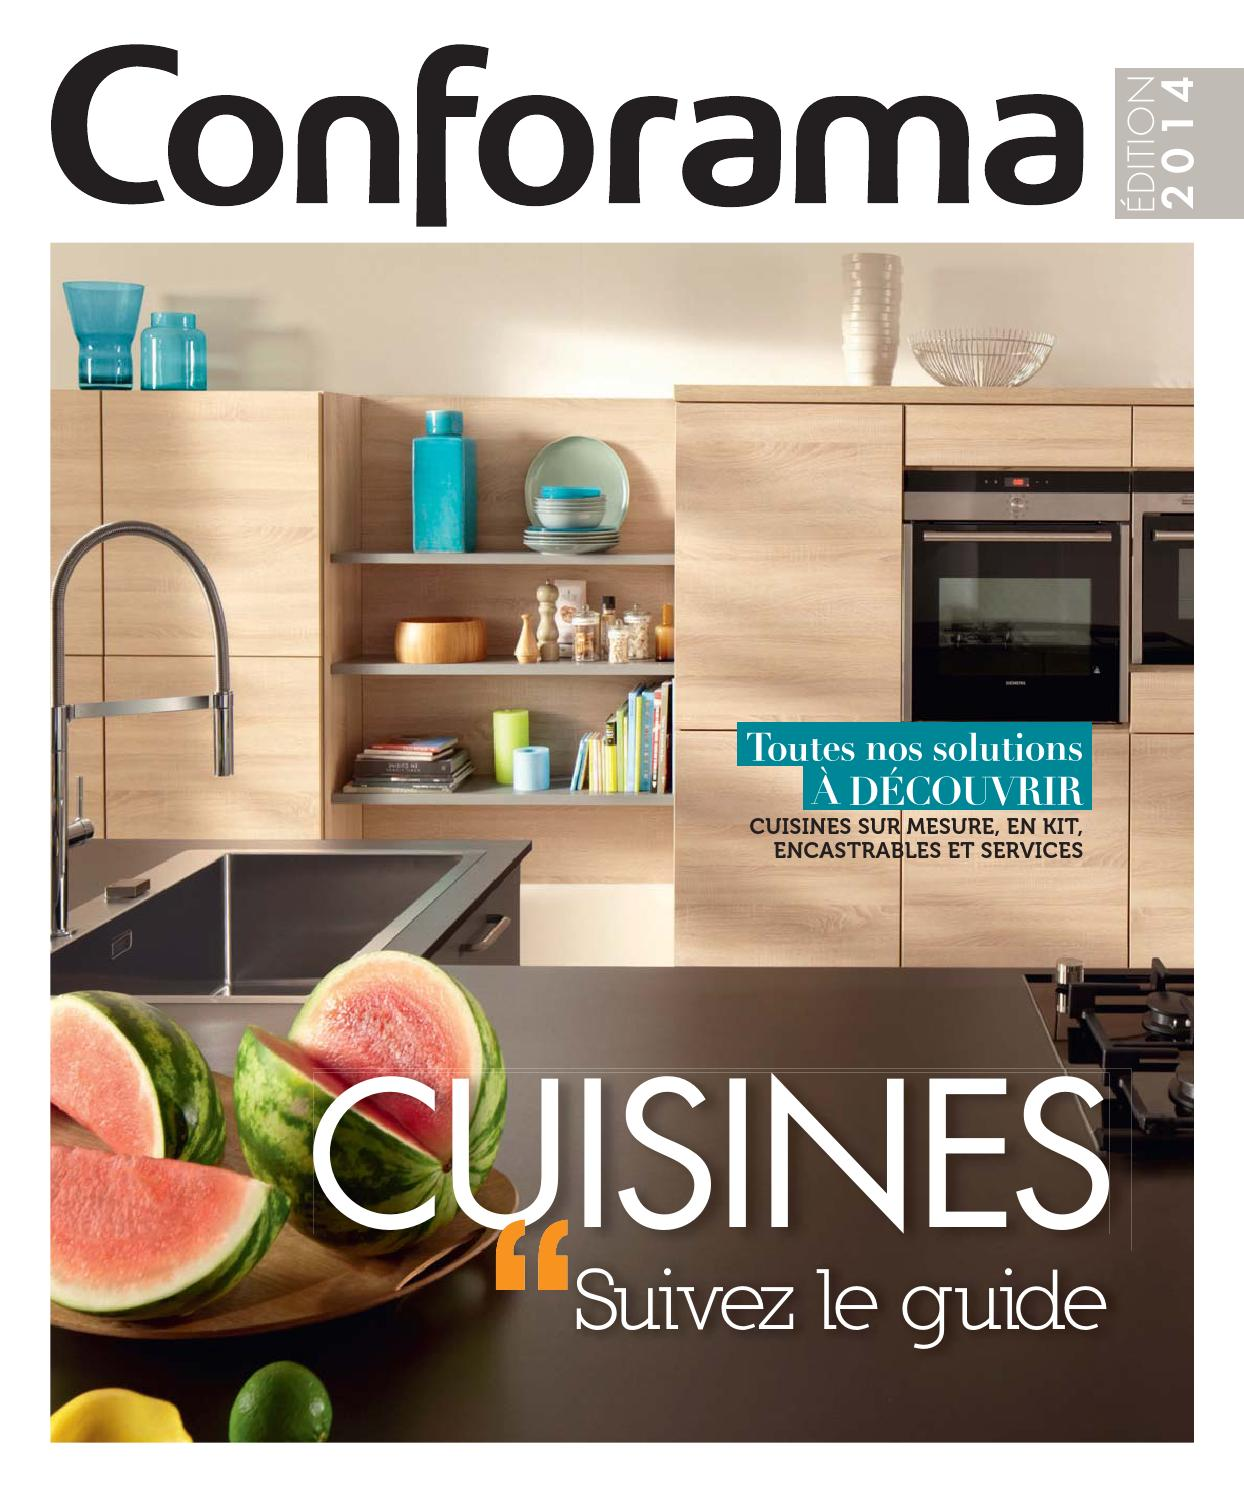 Catalogue conforama guide cuisines 2014 by joe monroe issuu - Cuisine cuisinella catalogue ...